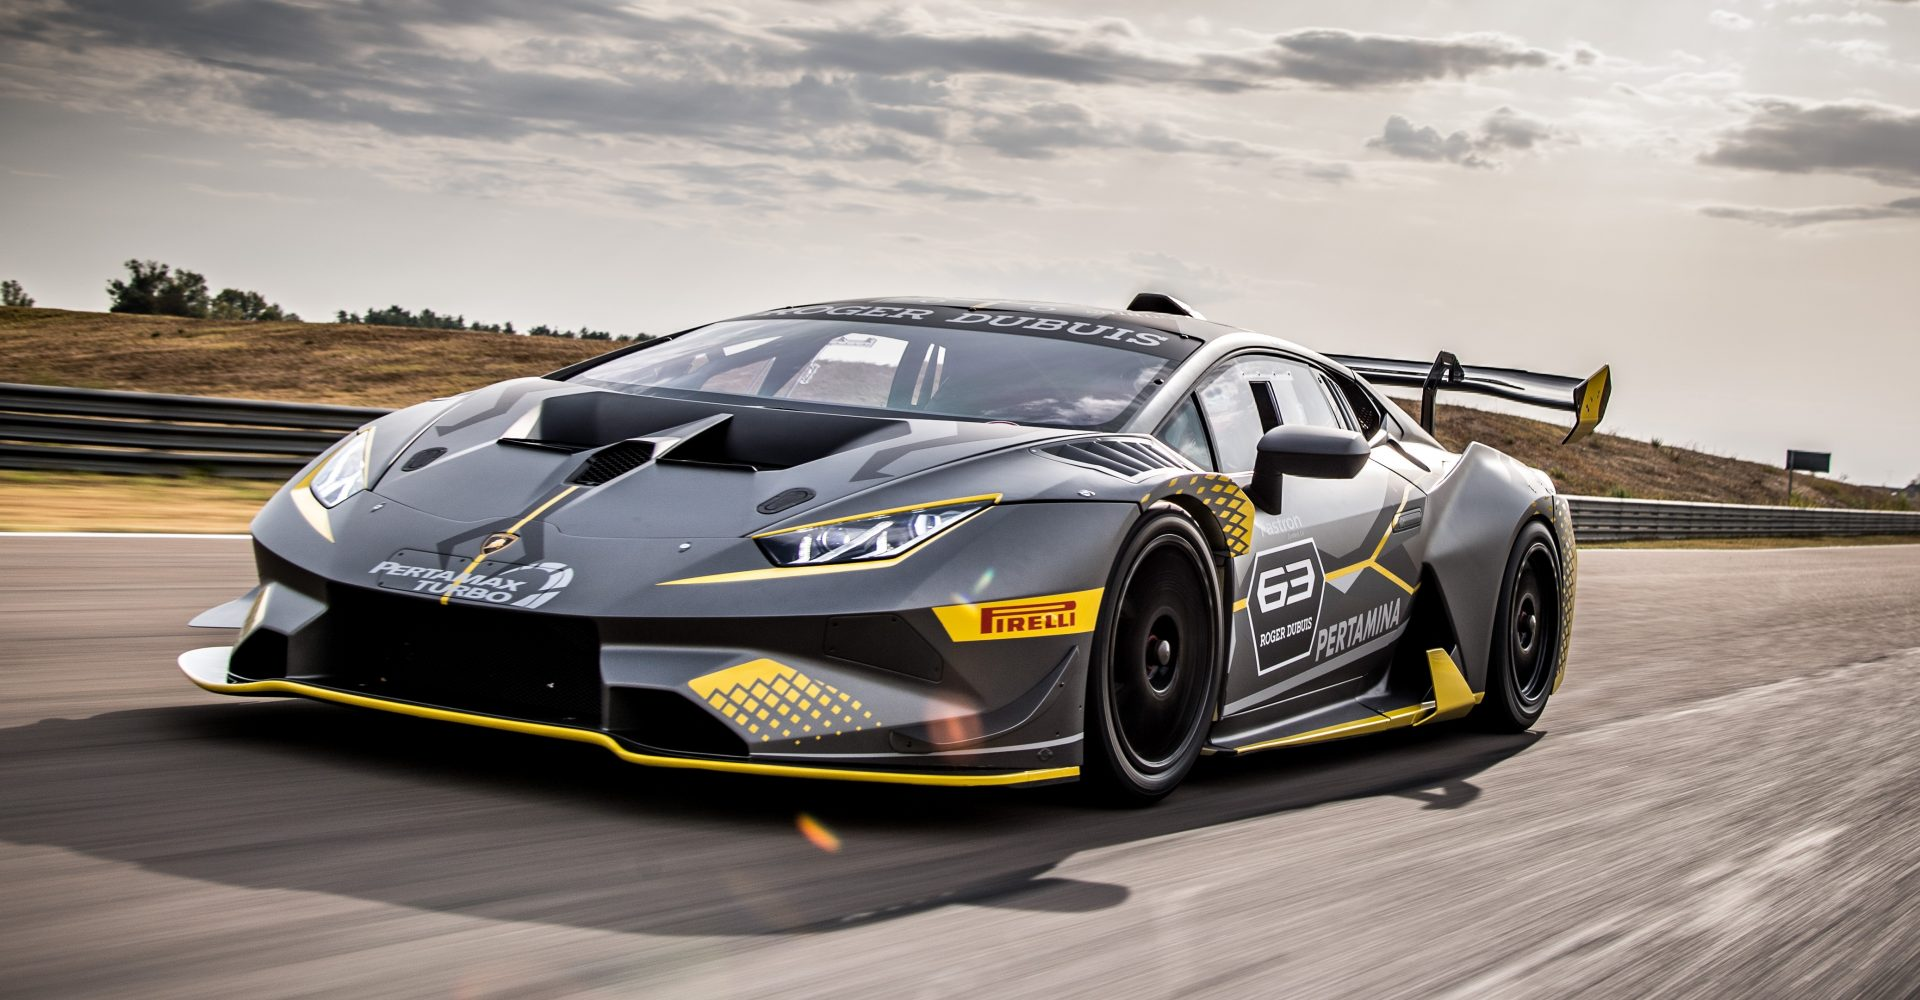 Lamborghini debuts new Huracan Super Trofeo Evo – and here's what you need to know about it